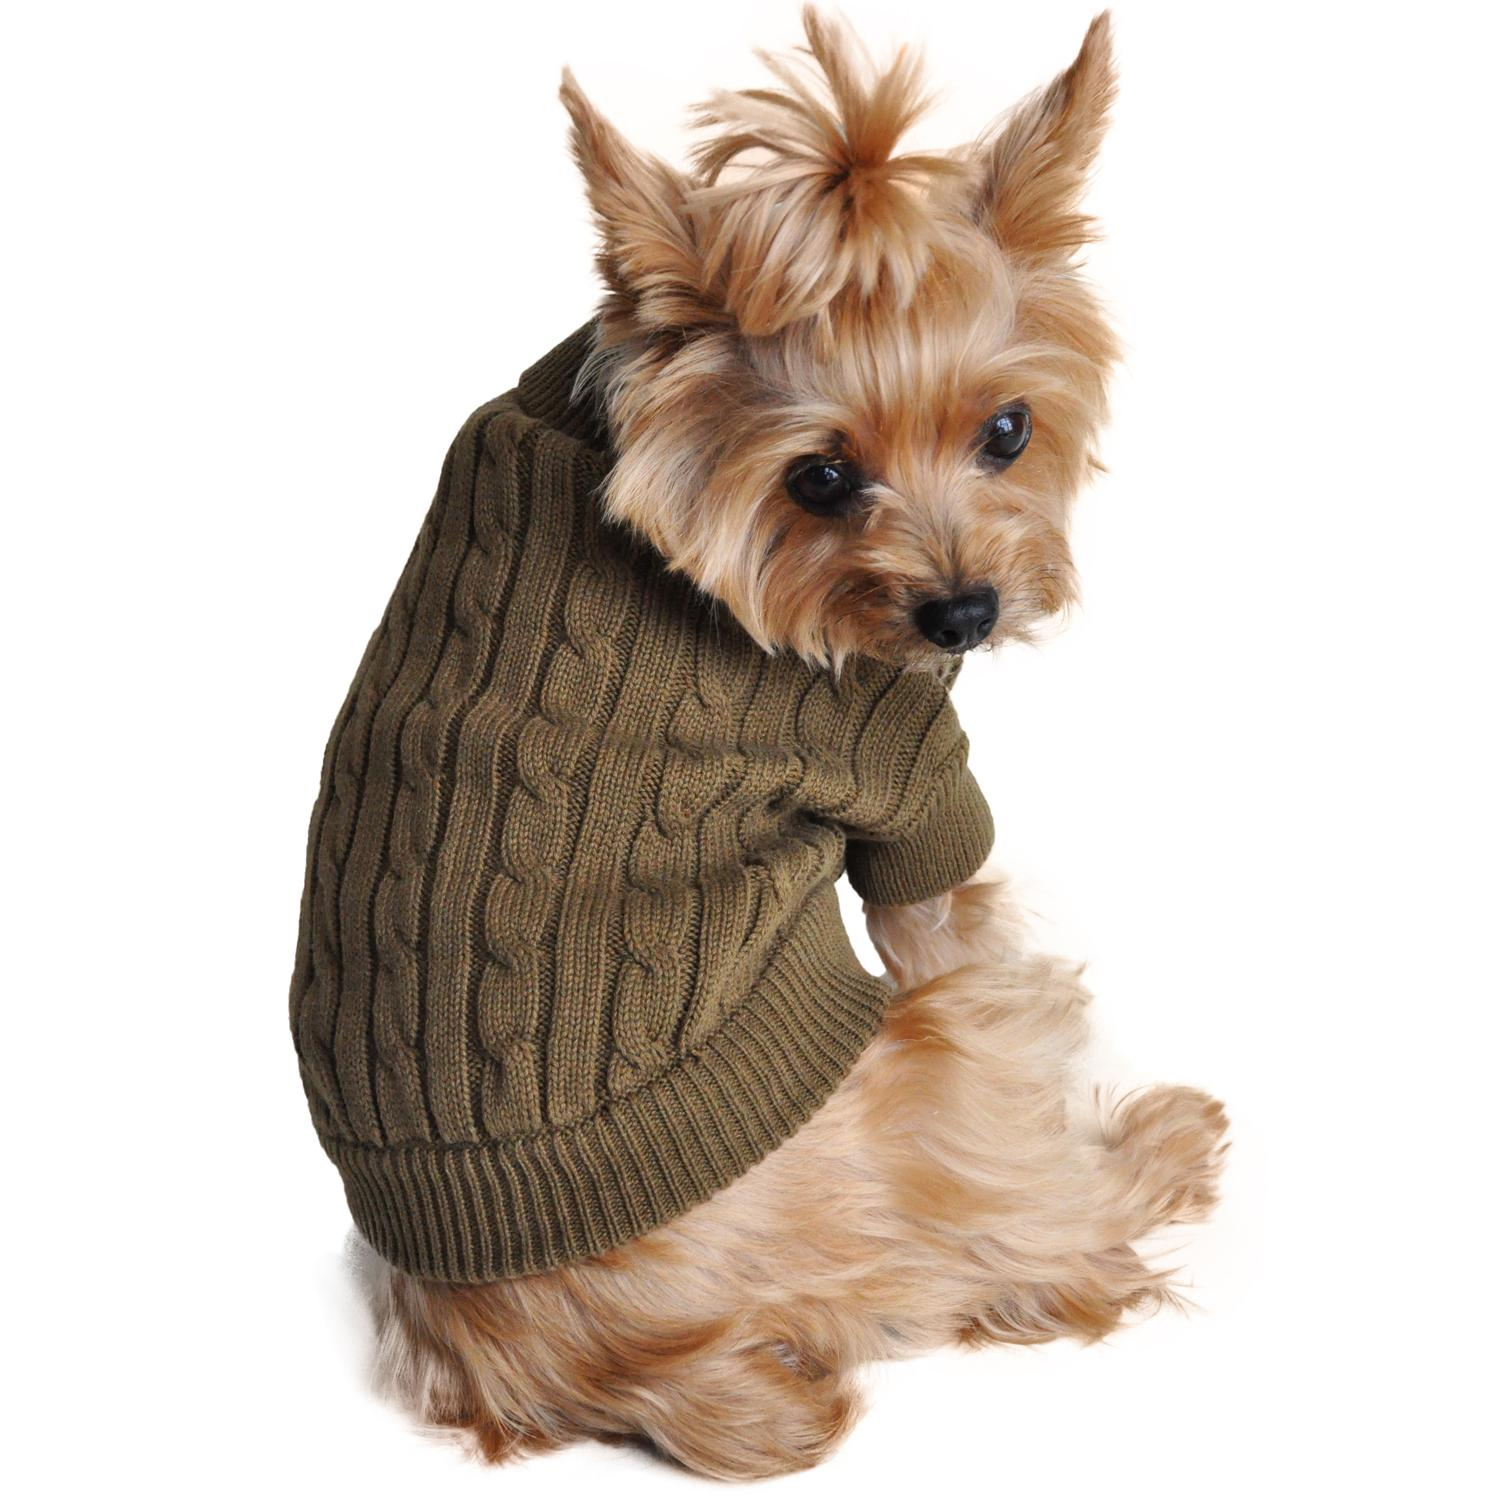 Cable Knit Dog Sweater by Doggie Design - Herb Green